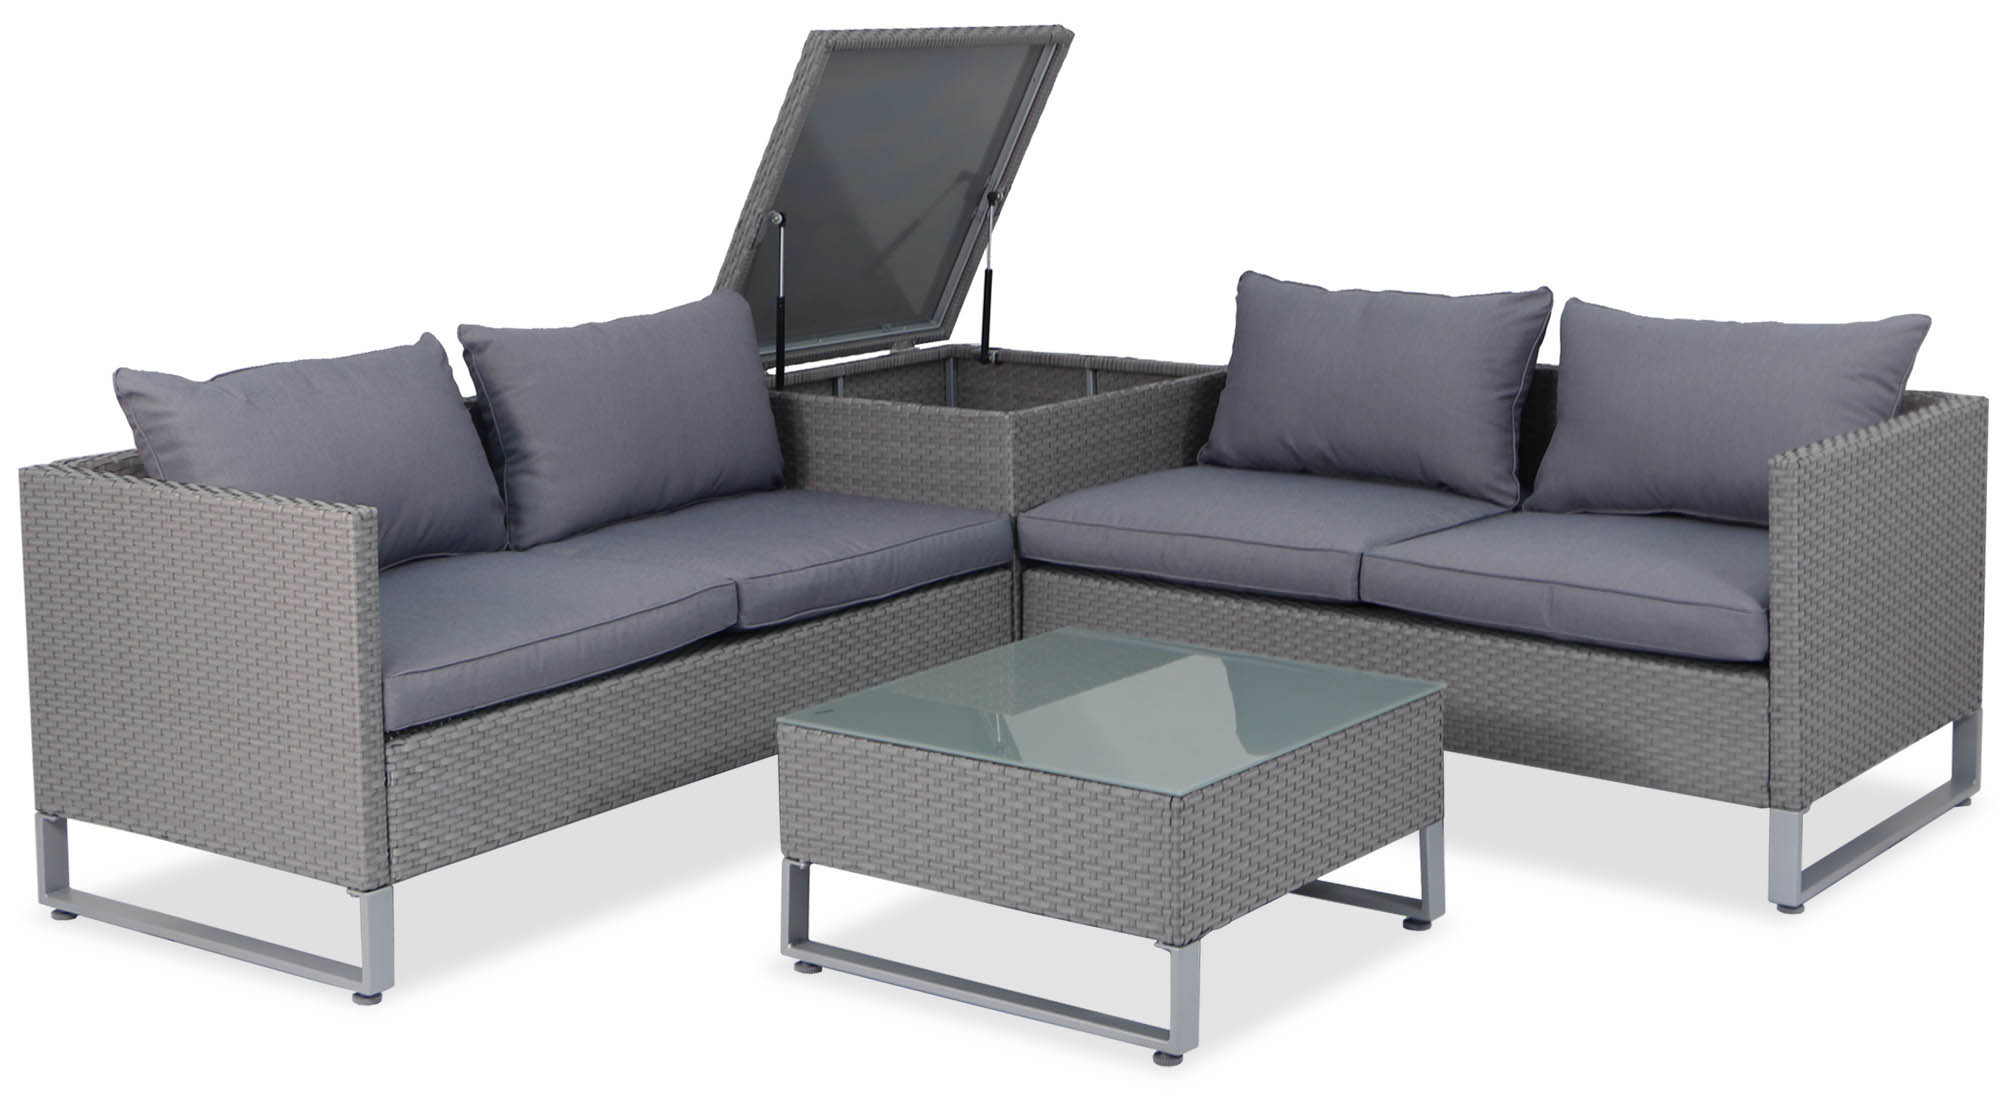 Royal Synthetic Rattan Outdoor Sofa Set with Storage Box ... on Outdoor Loveseat Sets  id=93287